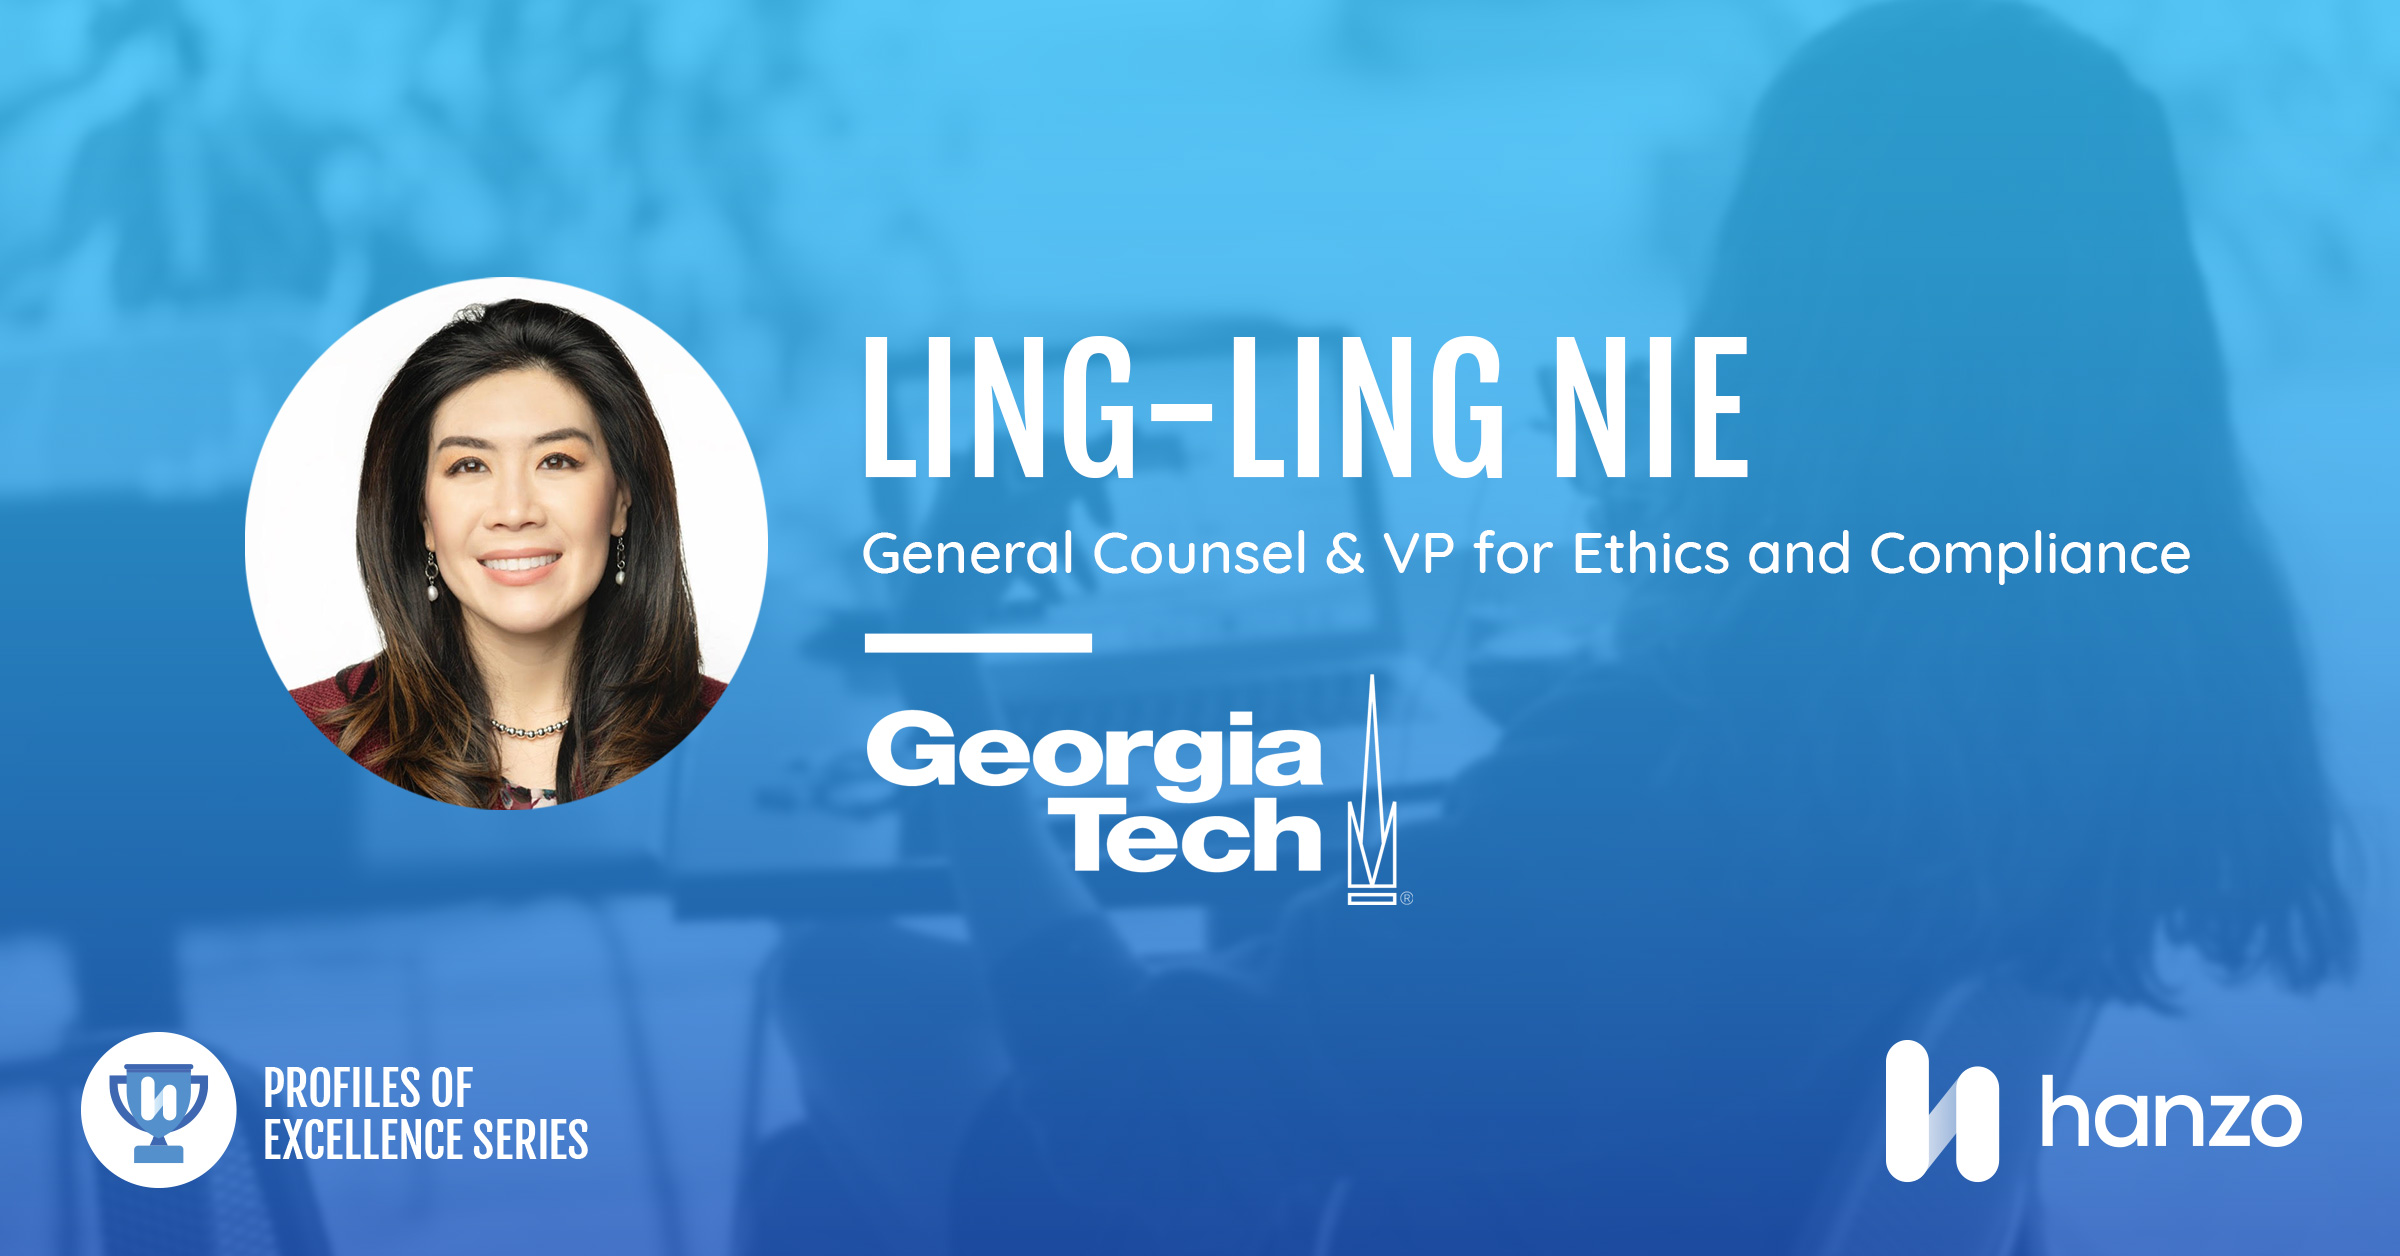 An Interview with Ling-Ling Nie, Georgia Tech's New VP of E&C